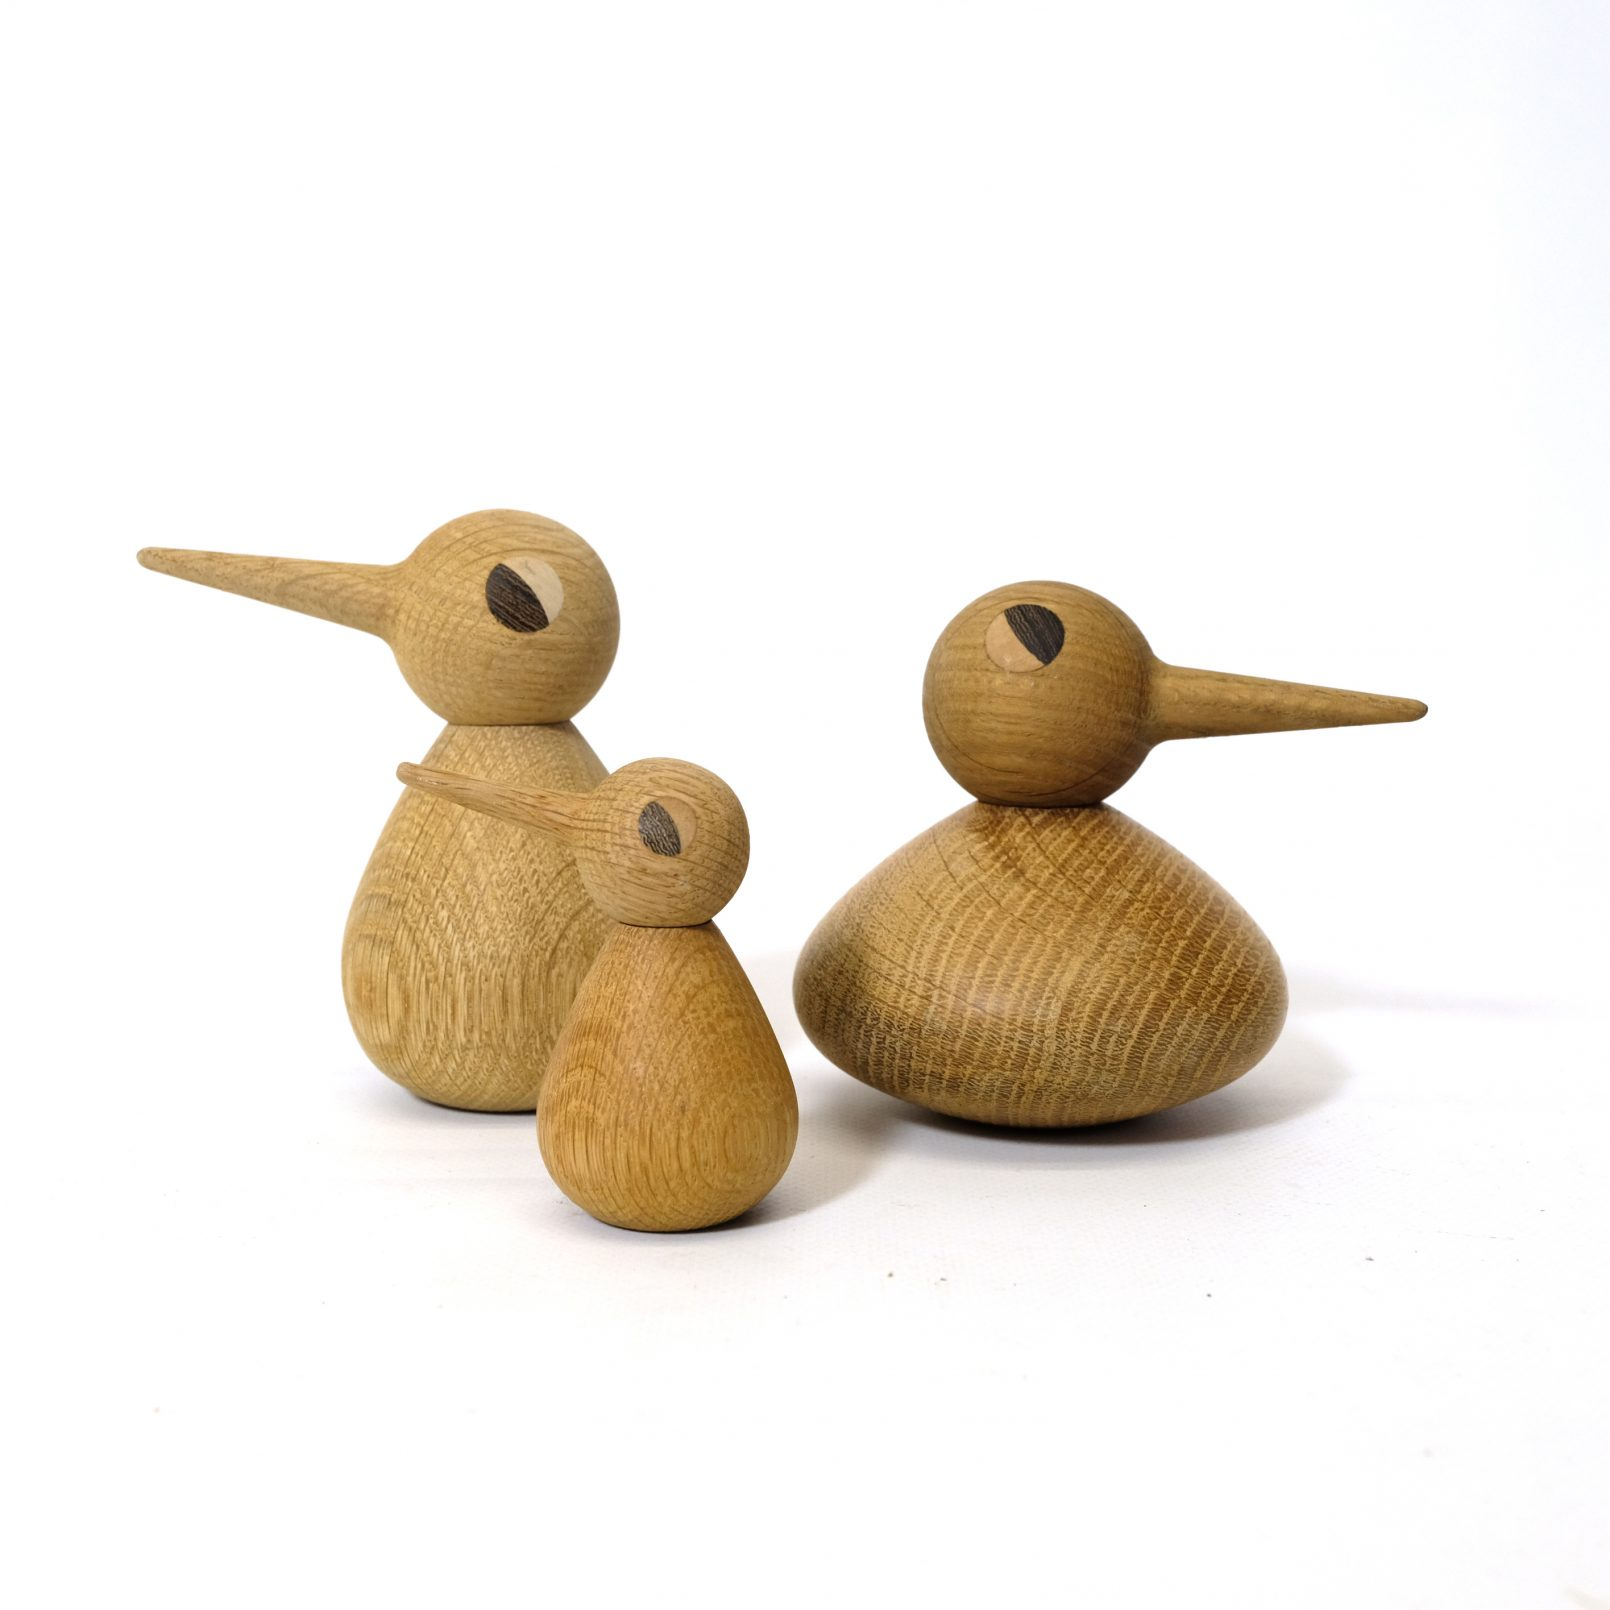 Birds family, Kristian Vedel, designed in 1959.